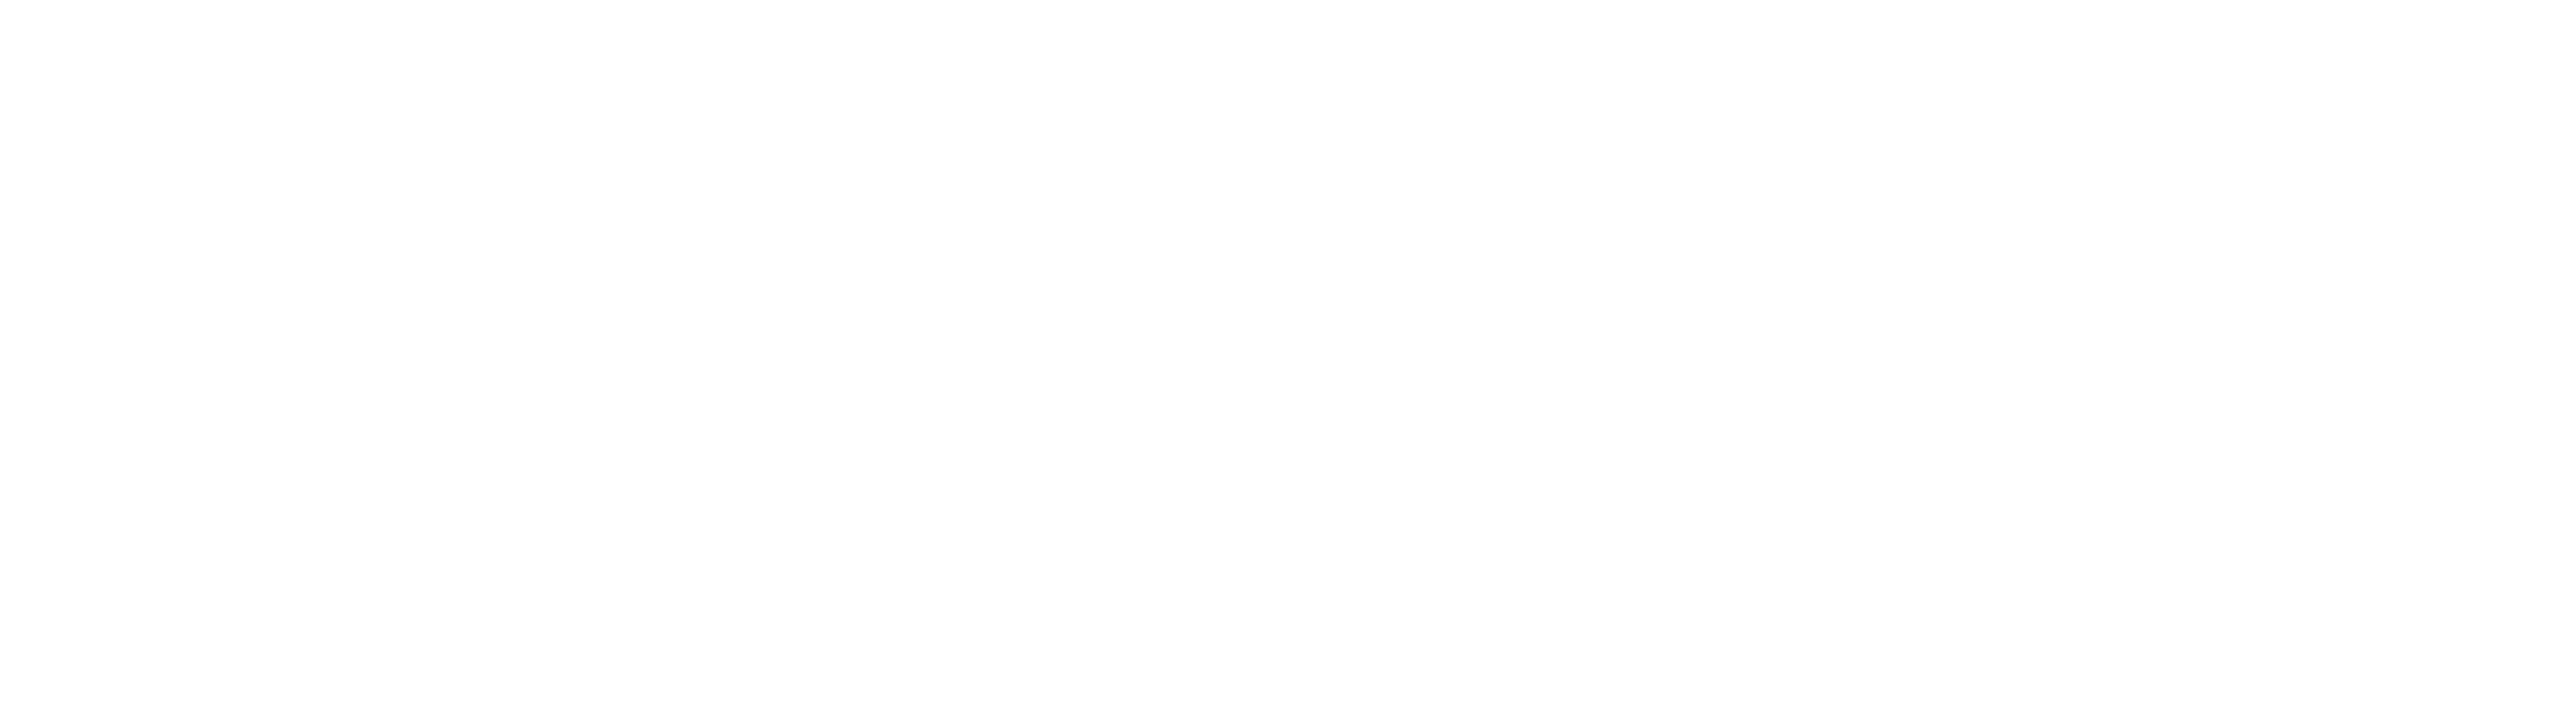 Enzo Lair PRODUCTIONS